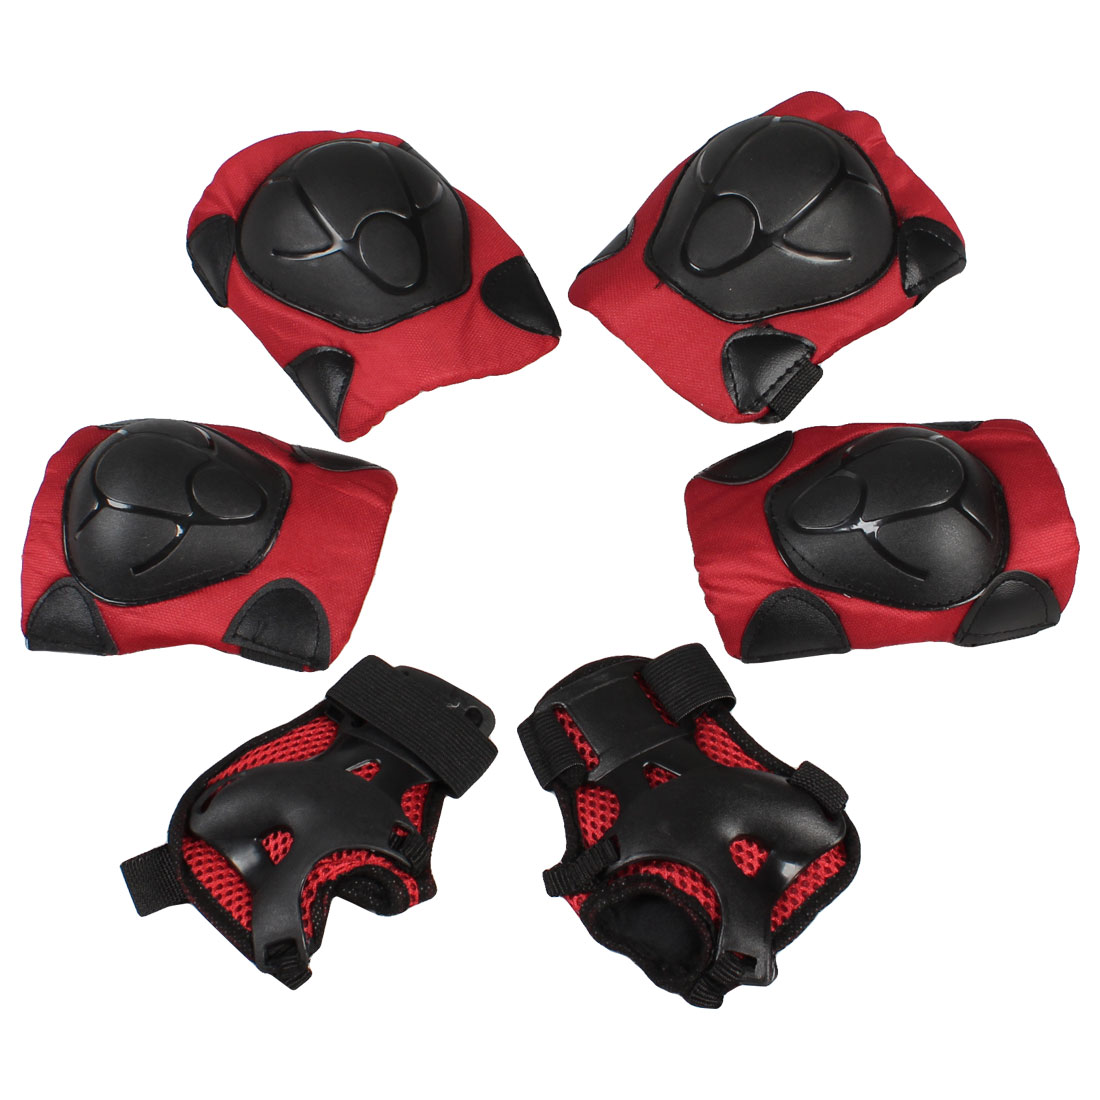 6Pcs Skateboarding Skating Wrist Guard Elbow Pads Knee Pads Safety Gear Set for Kids by Unique-Bargains